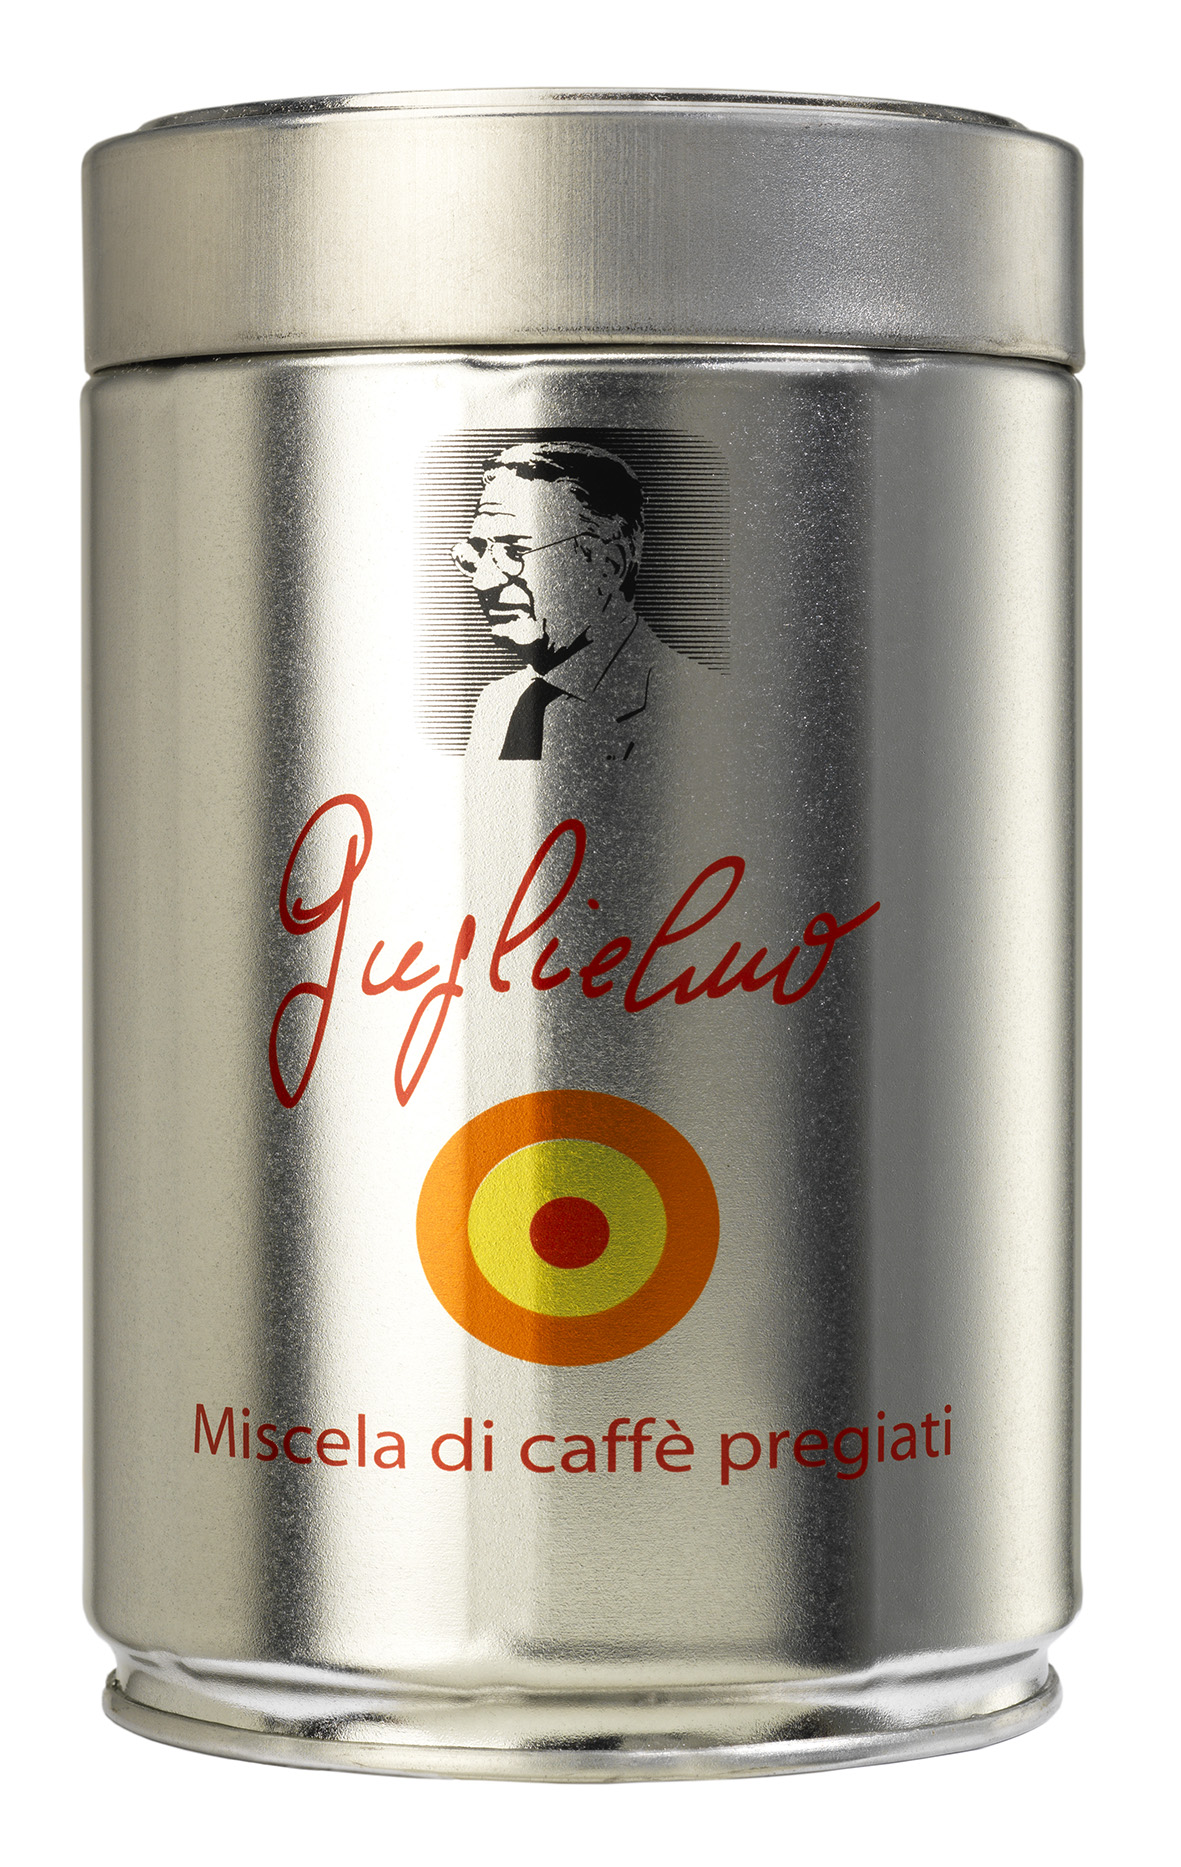 caffè Guglielmo lattina silver celebration